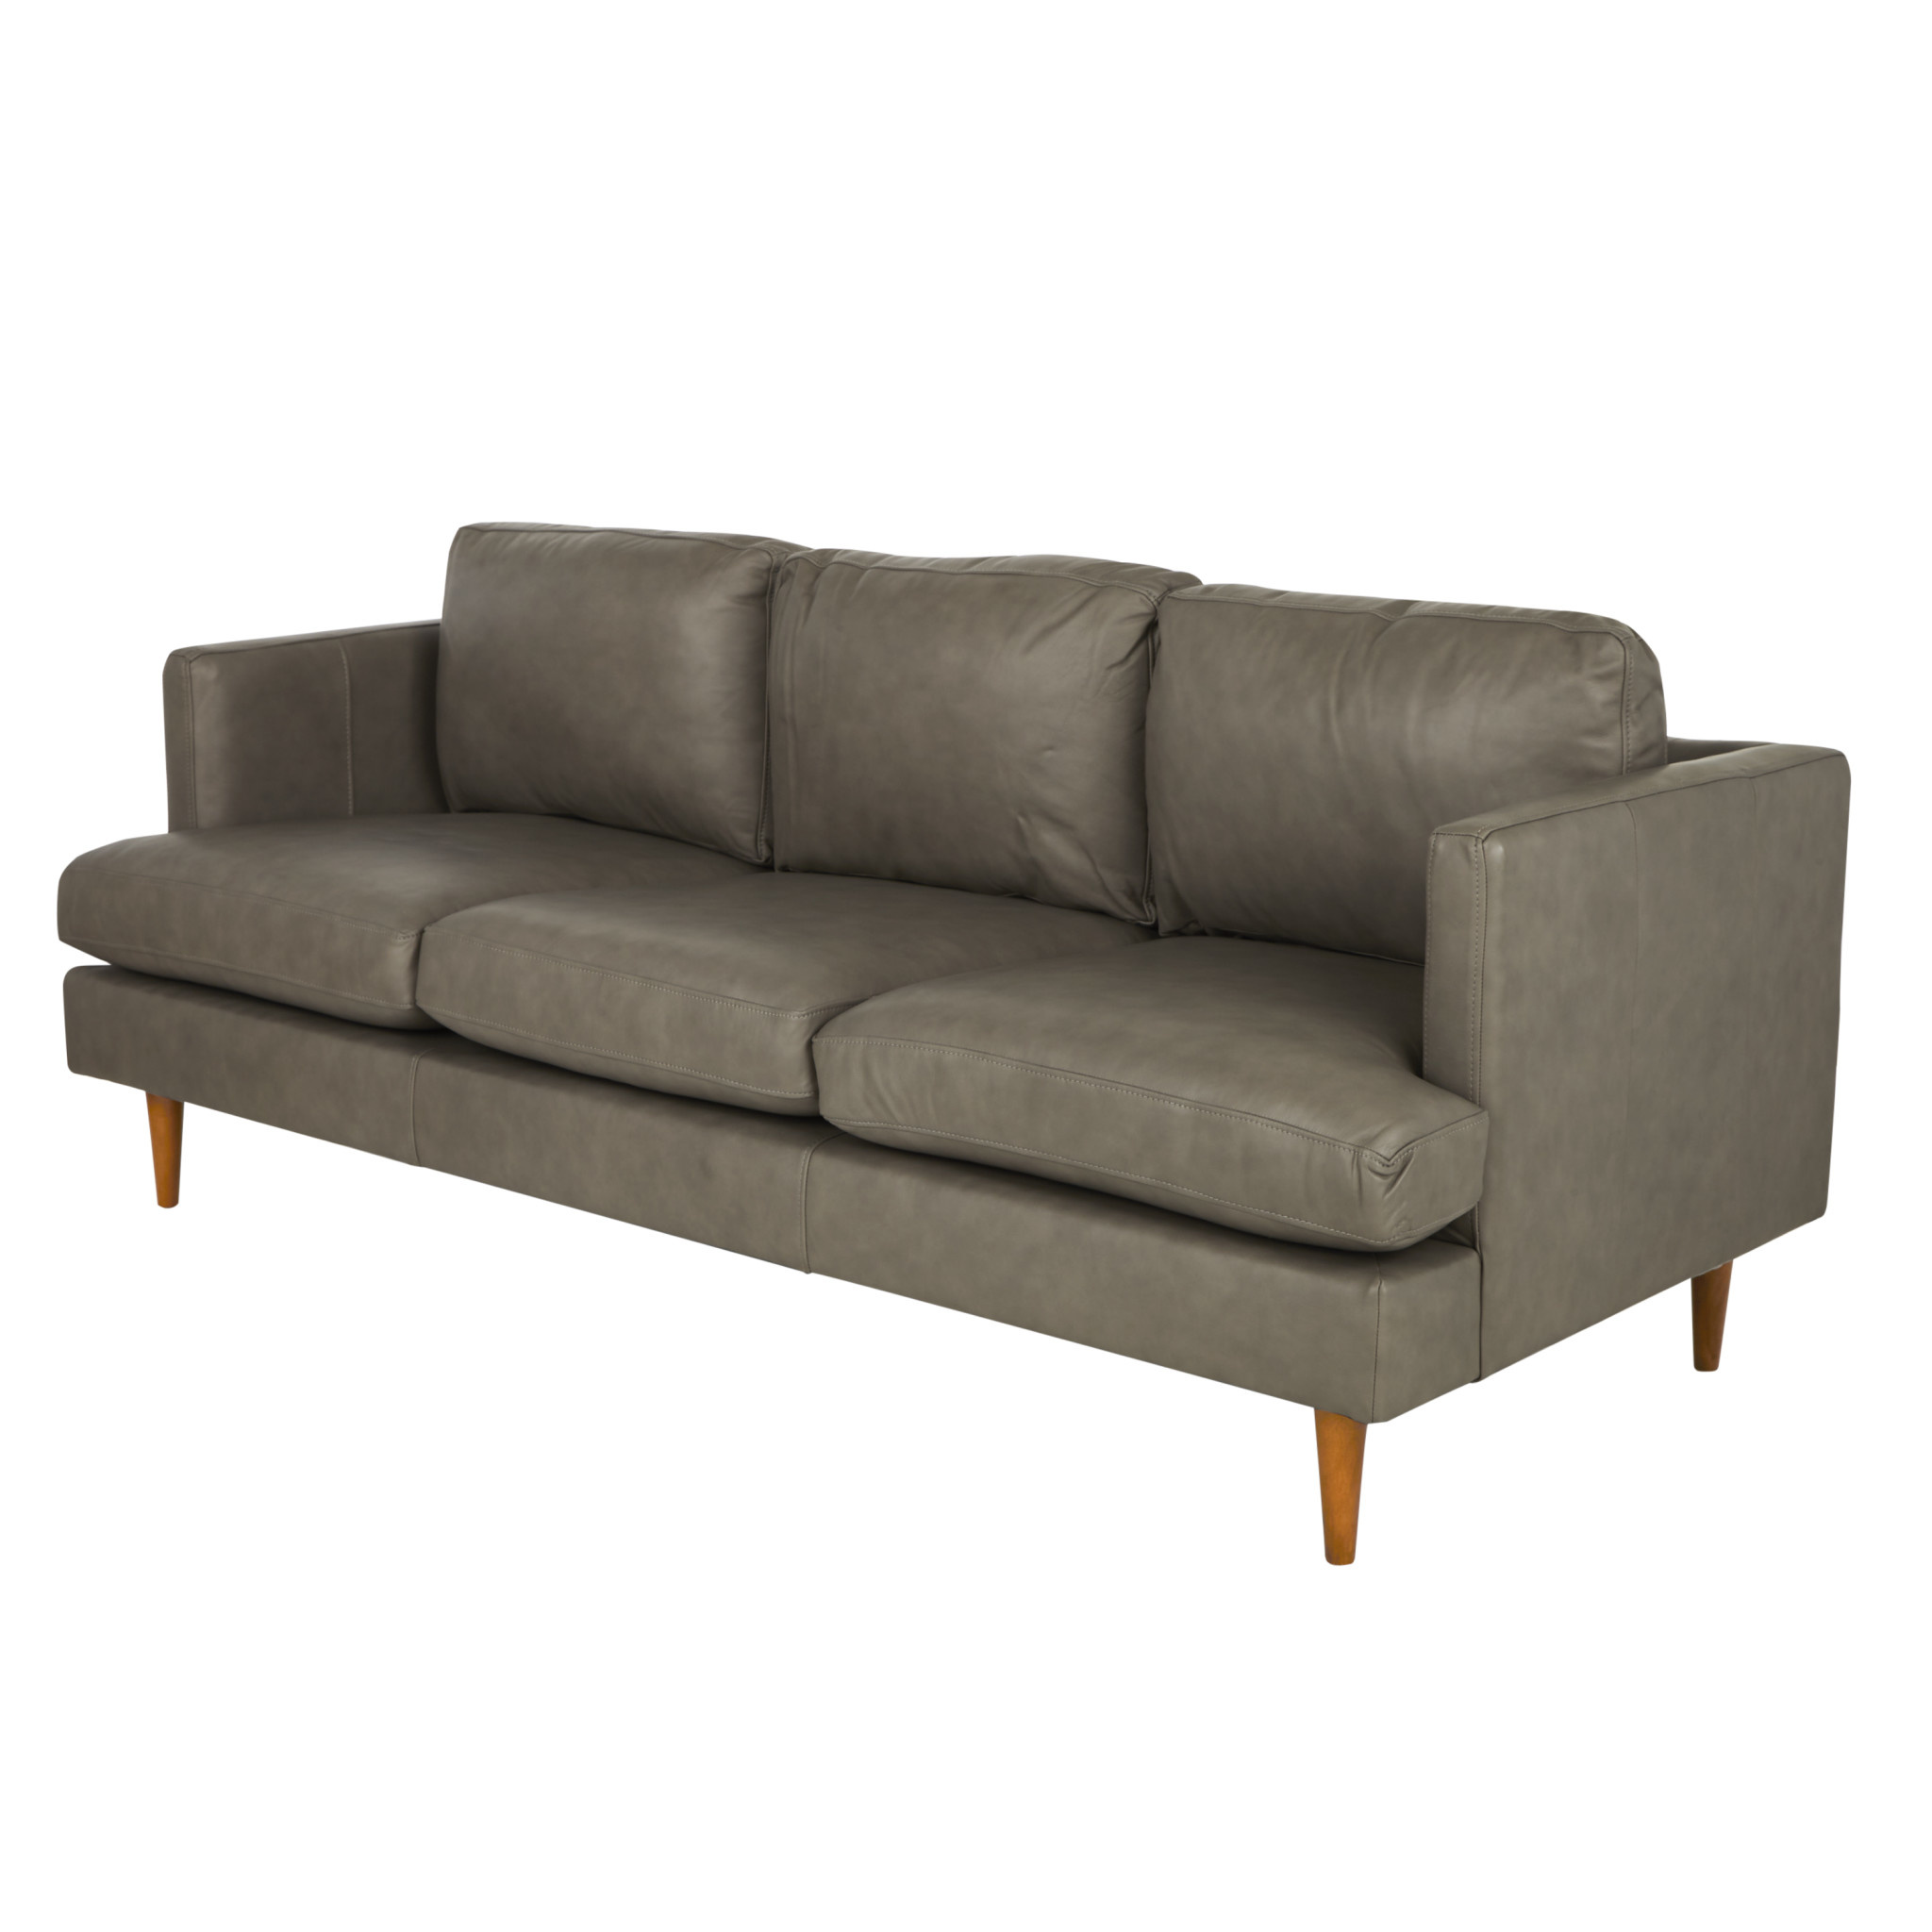 HOWSER SOFA - GREY